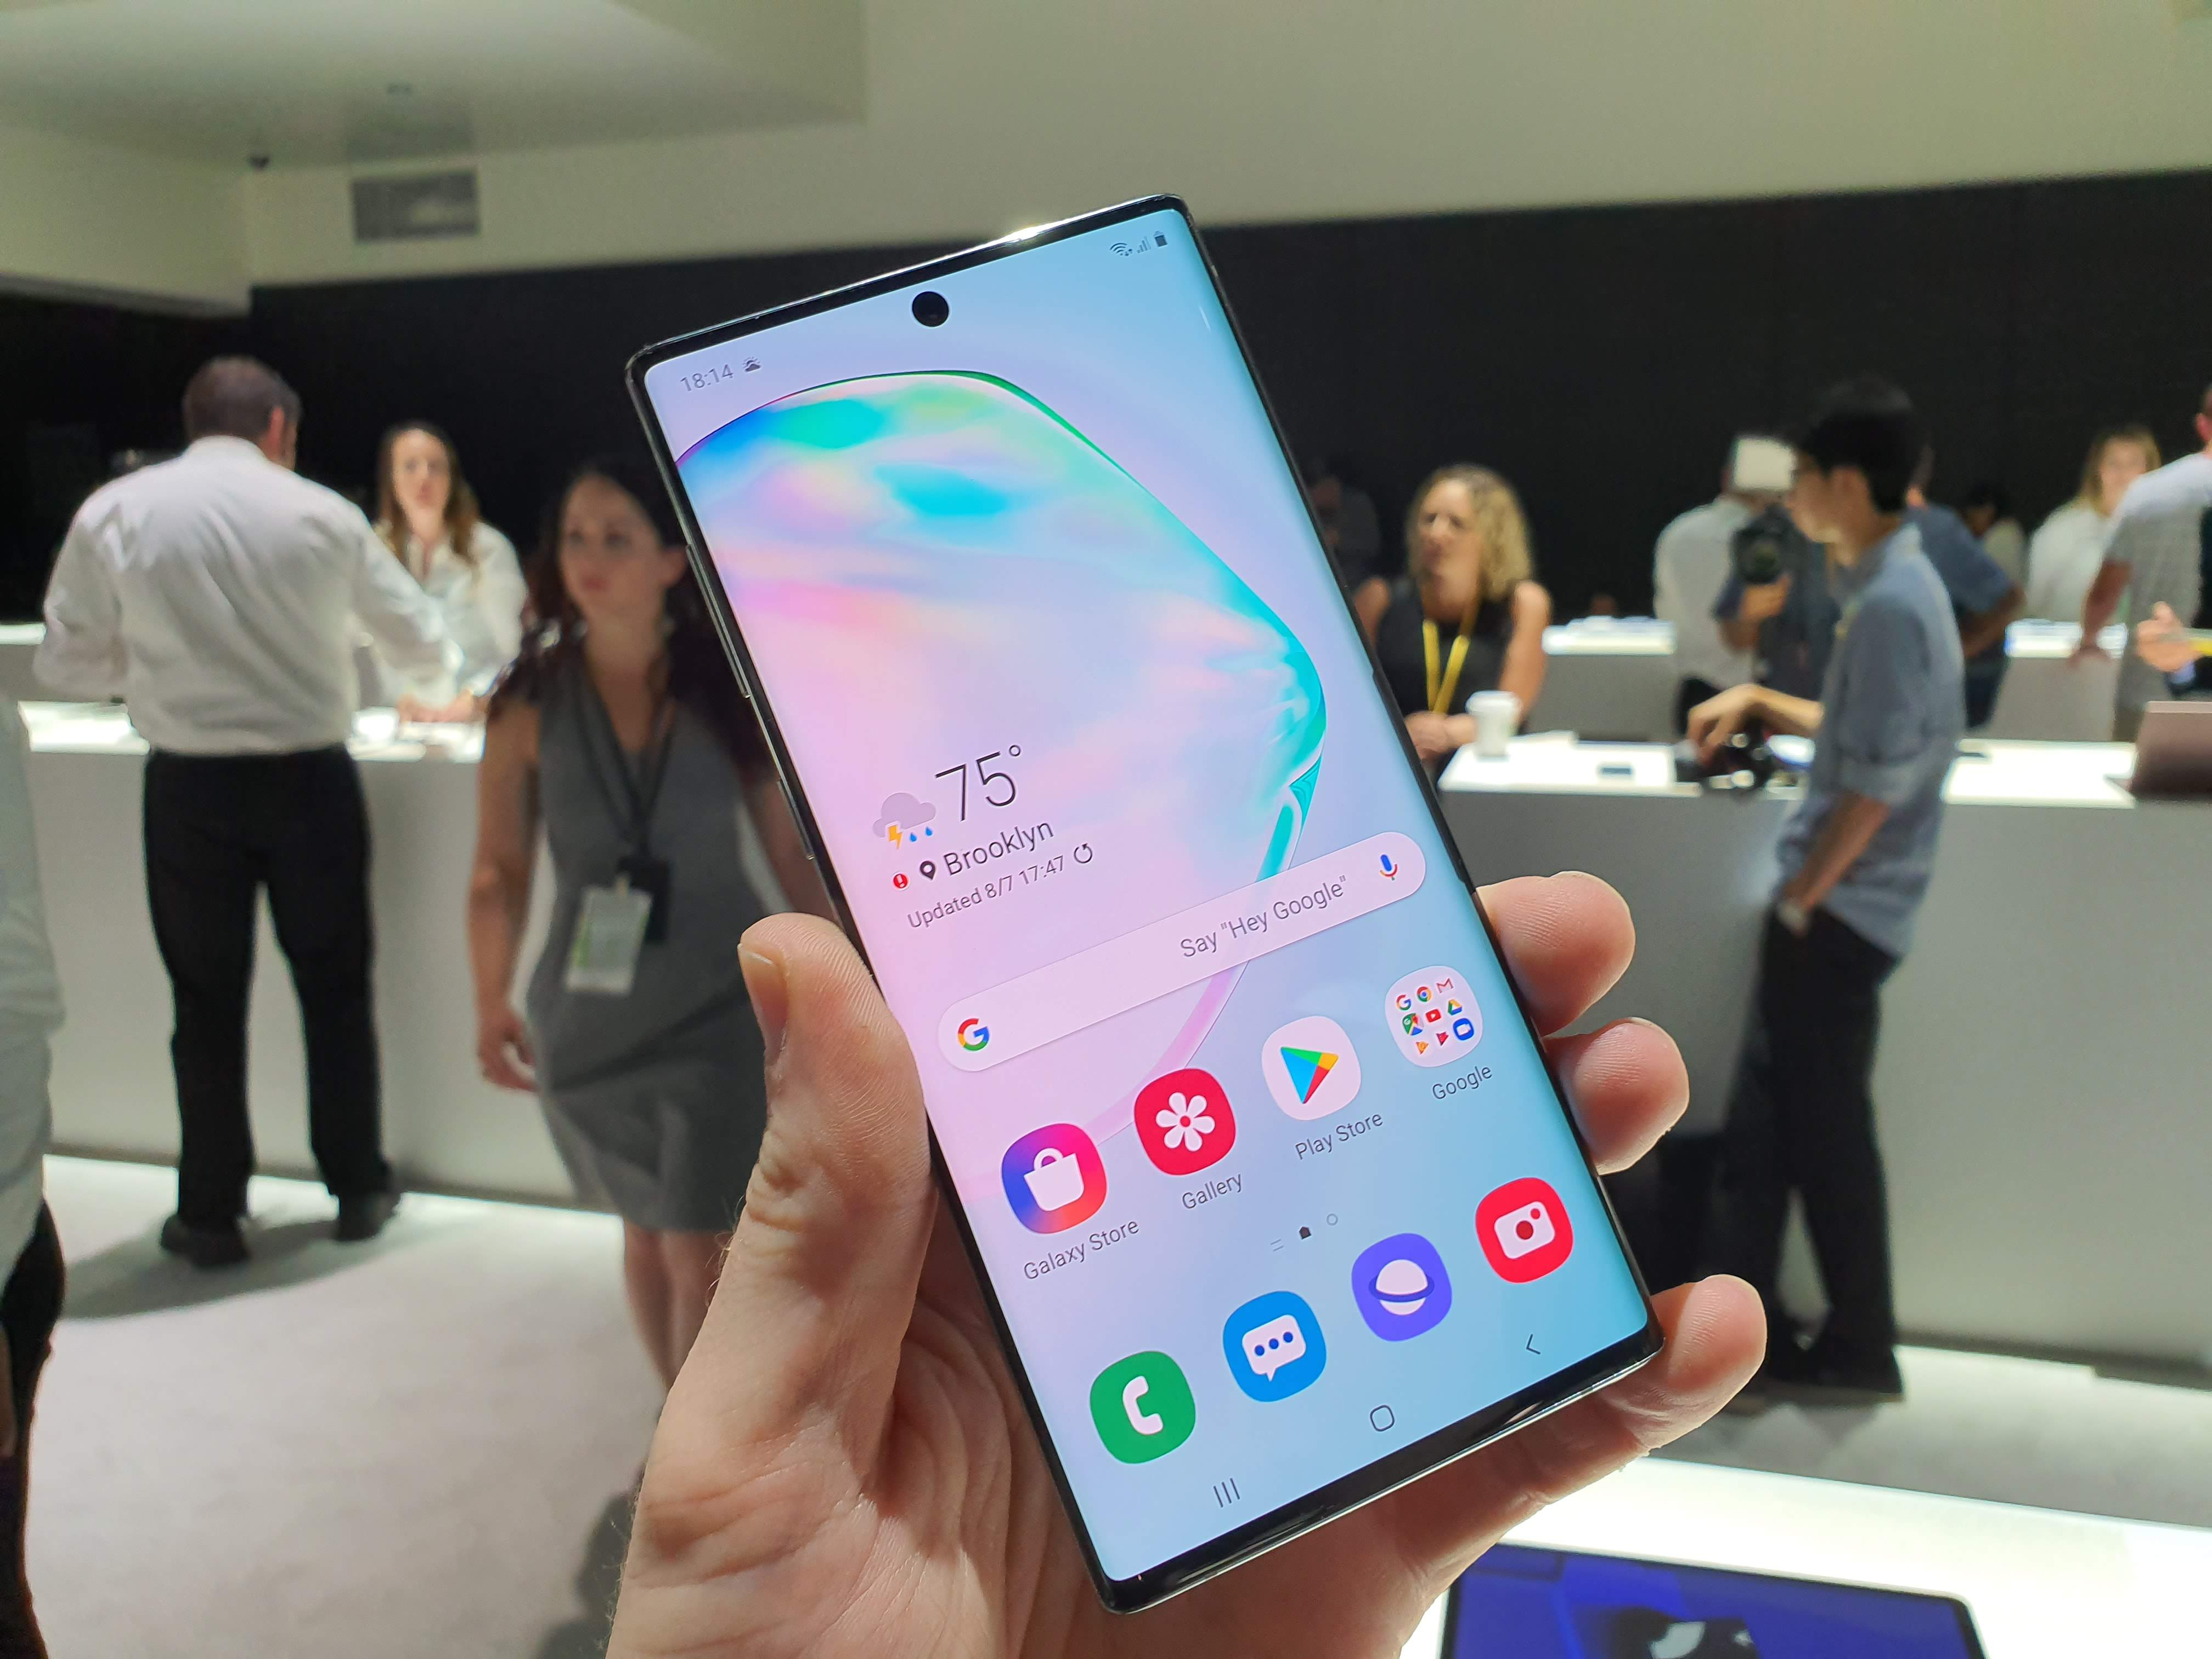 Samsung Galaxy Note 10 with Android 10 already being tested